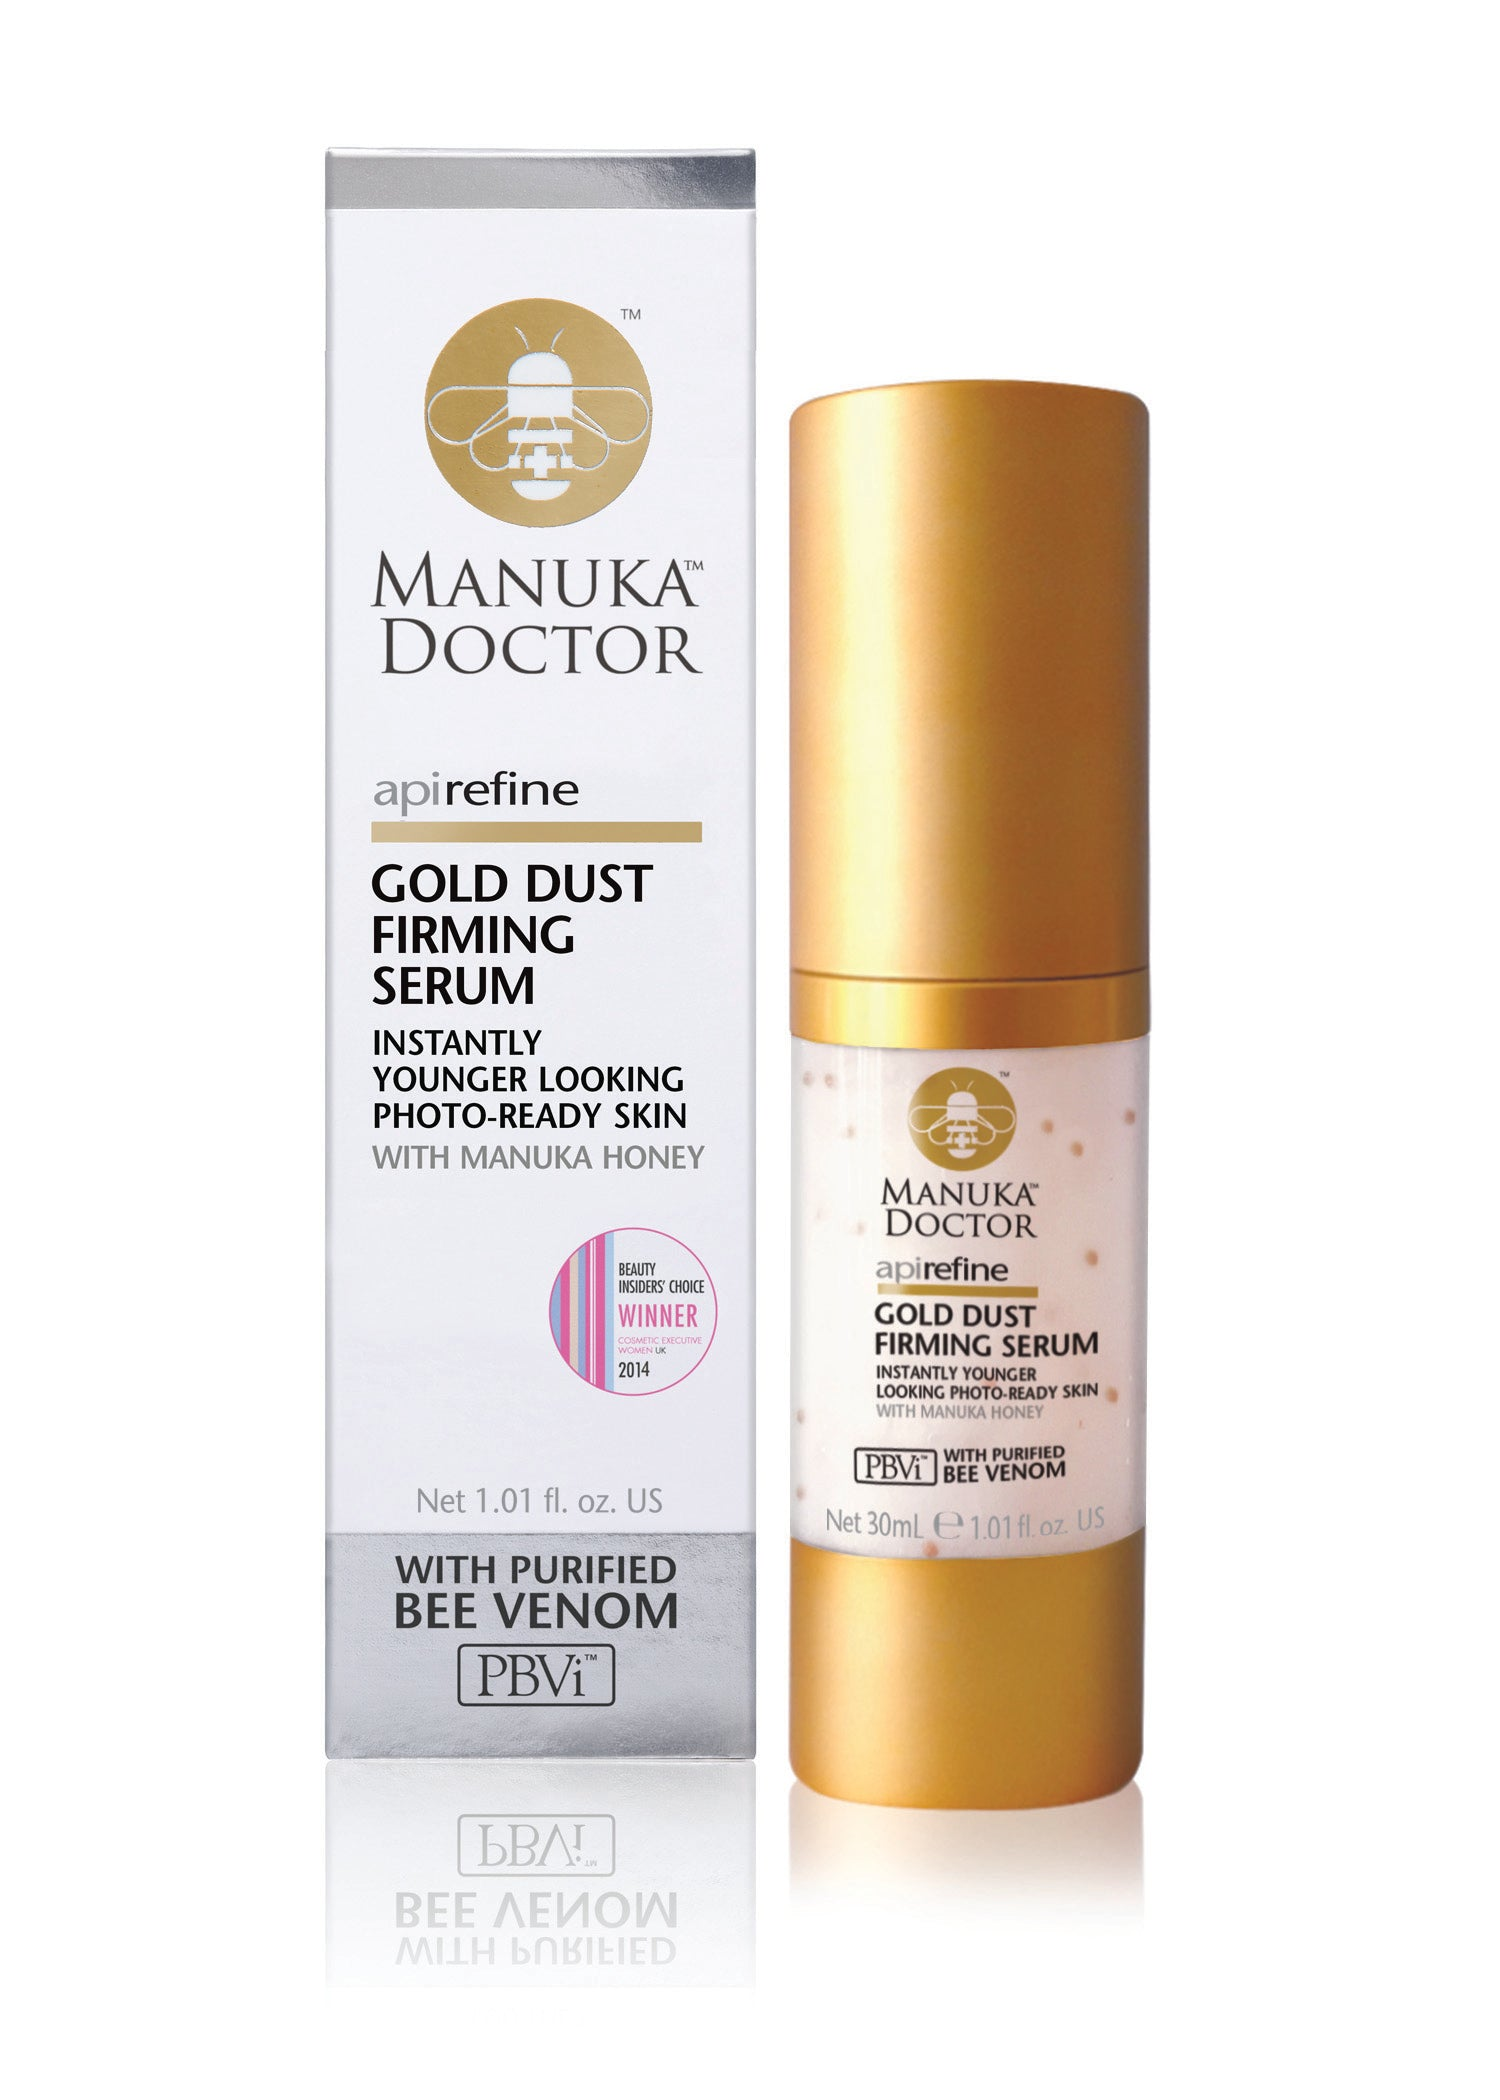 Manuka Doctor - Api Refine Gold Dust Firming Serum